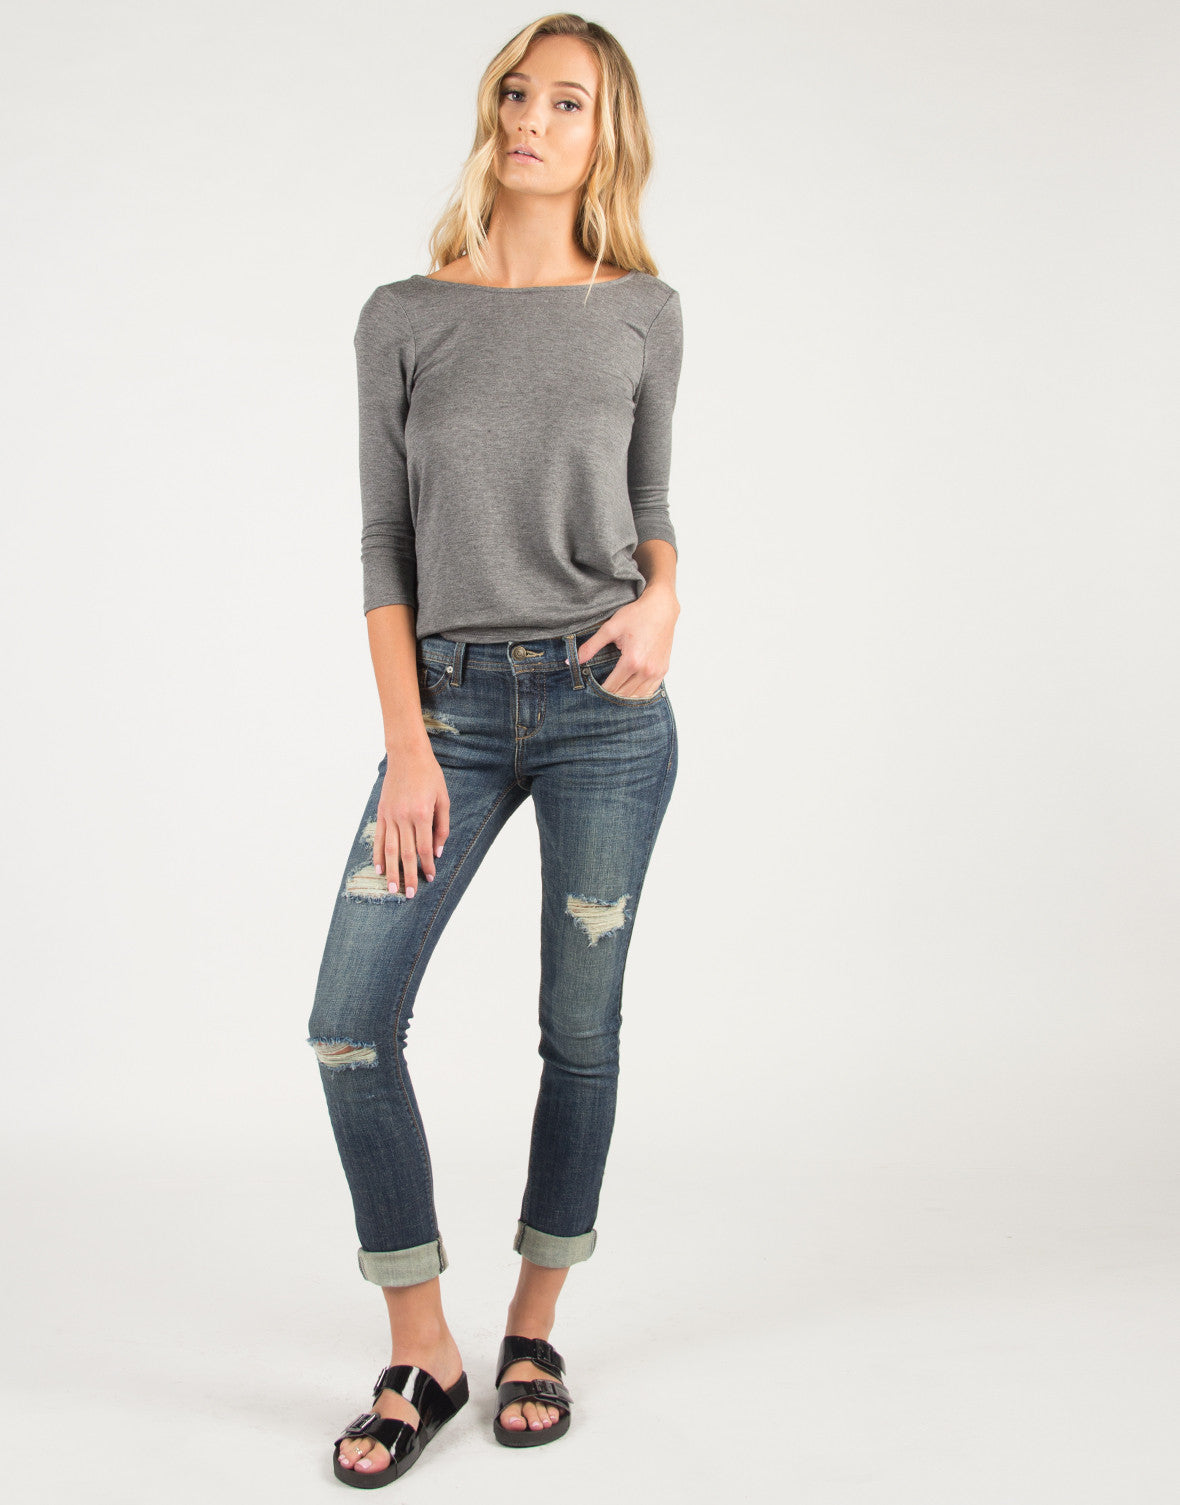 Distressed Rolled Up Skinny Jeans